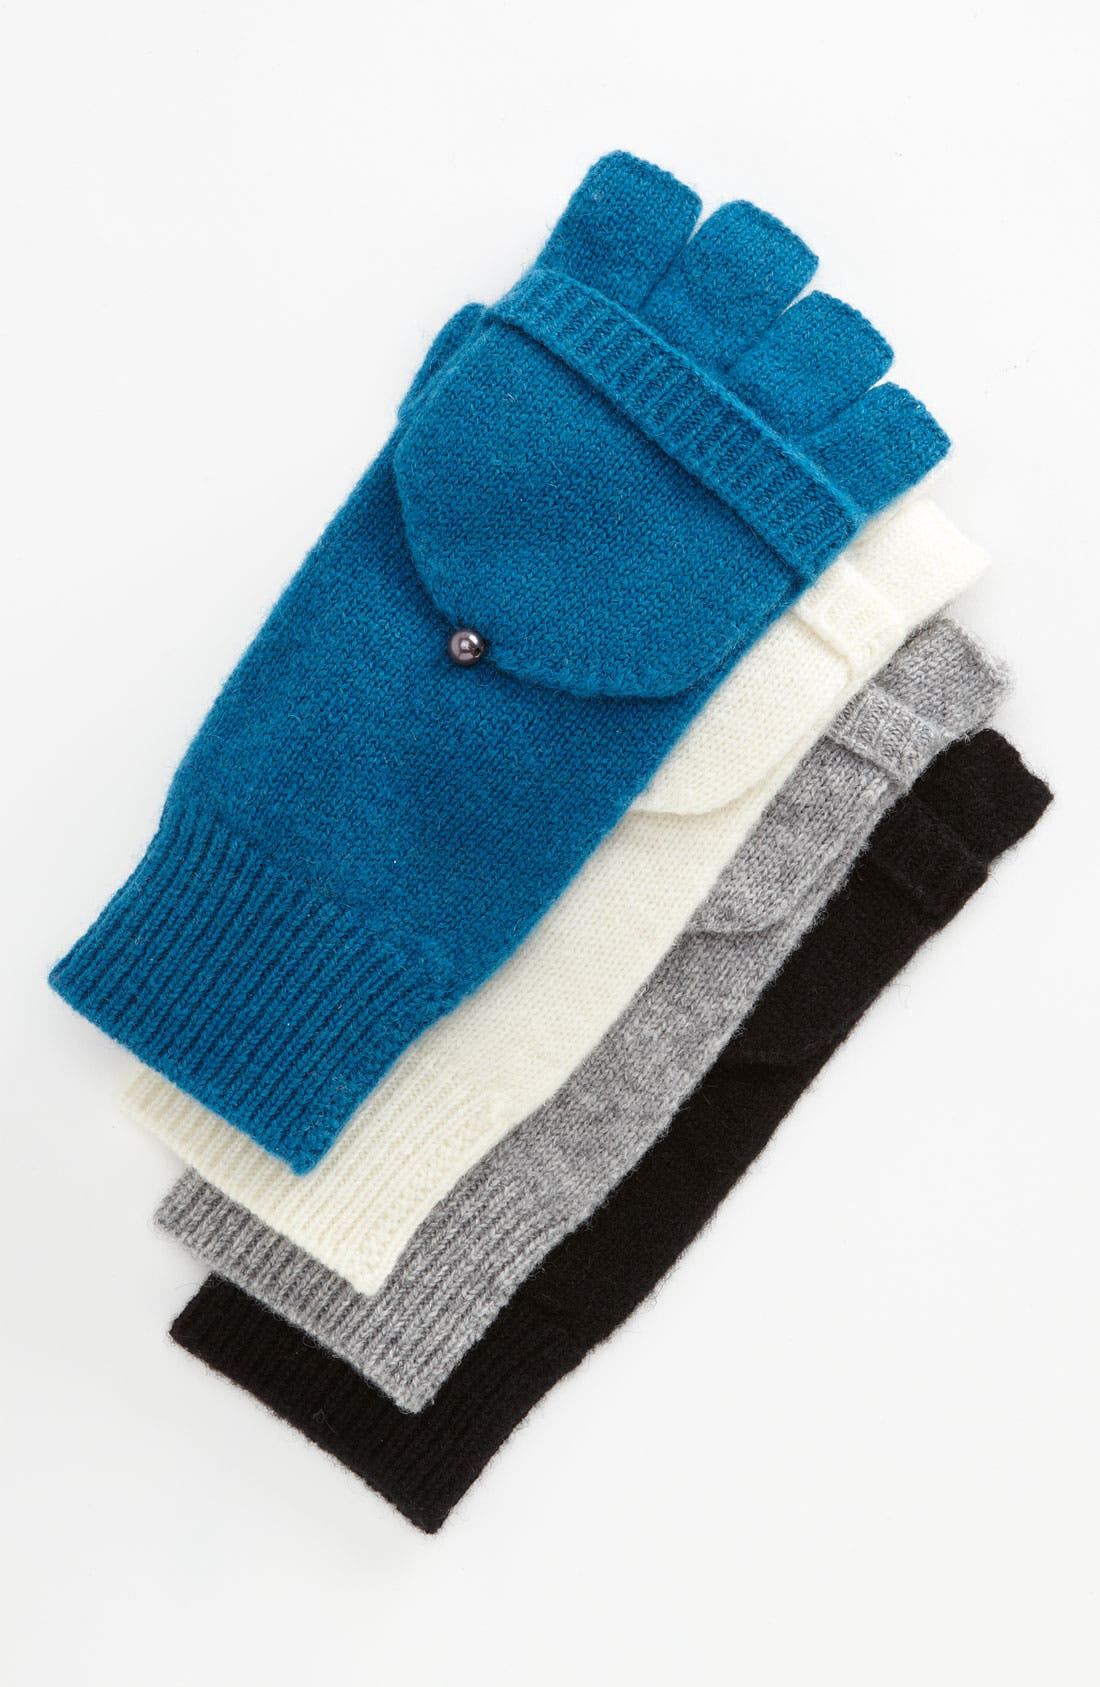 Main Image - Laundry by Shelli Segal Convertible Knit Mittens